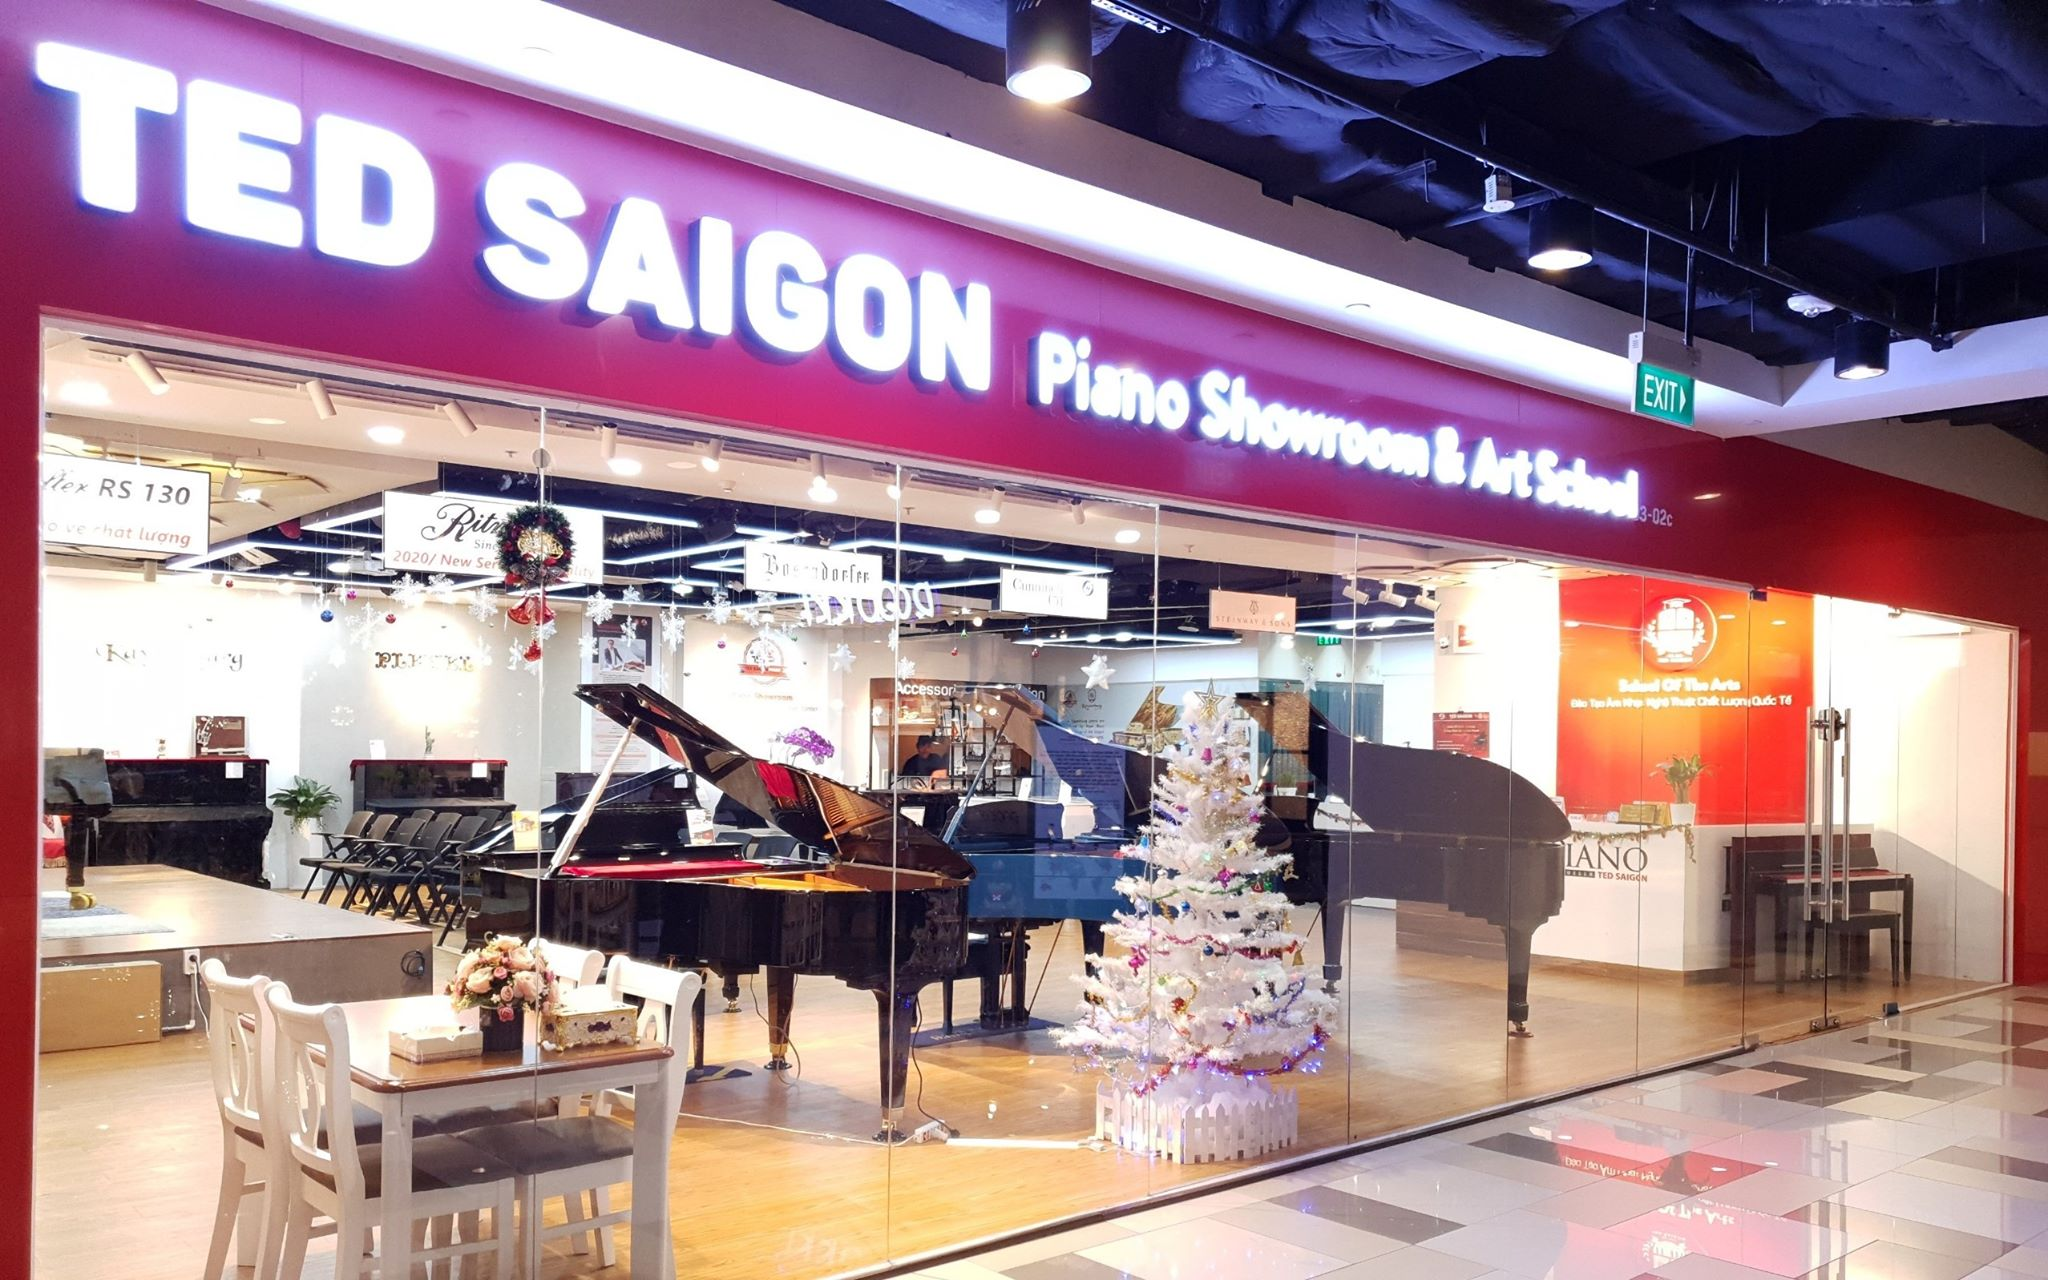 Showroom piano TED saigon